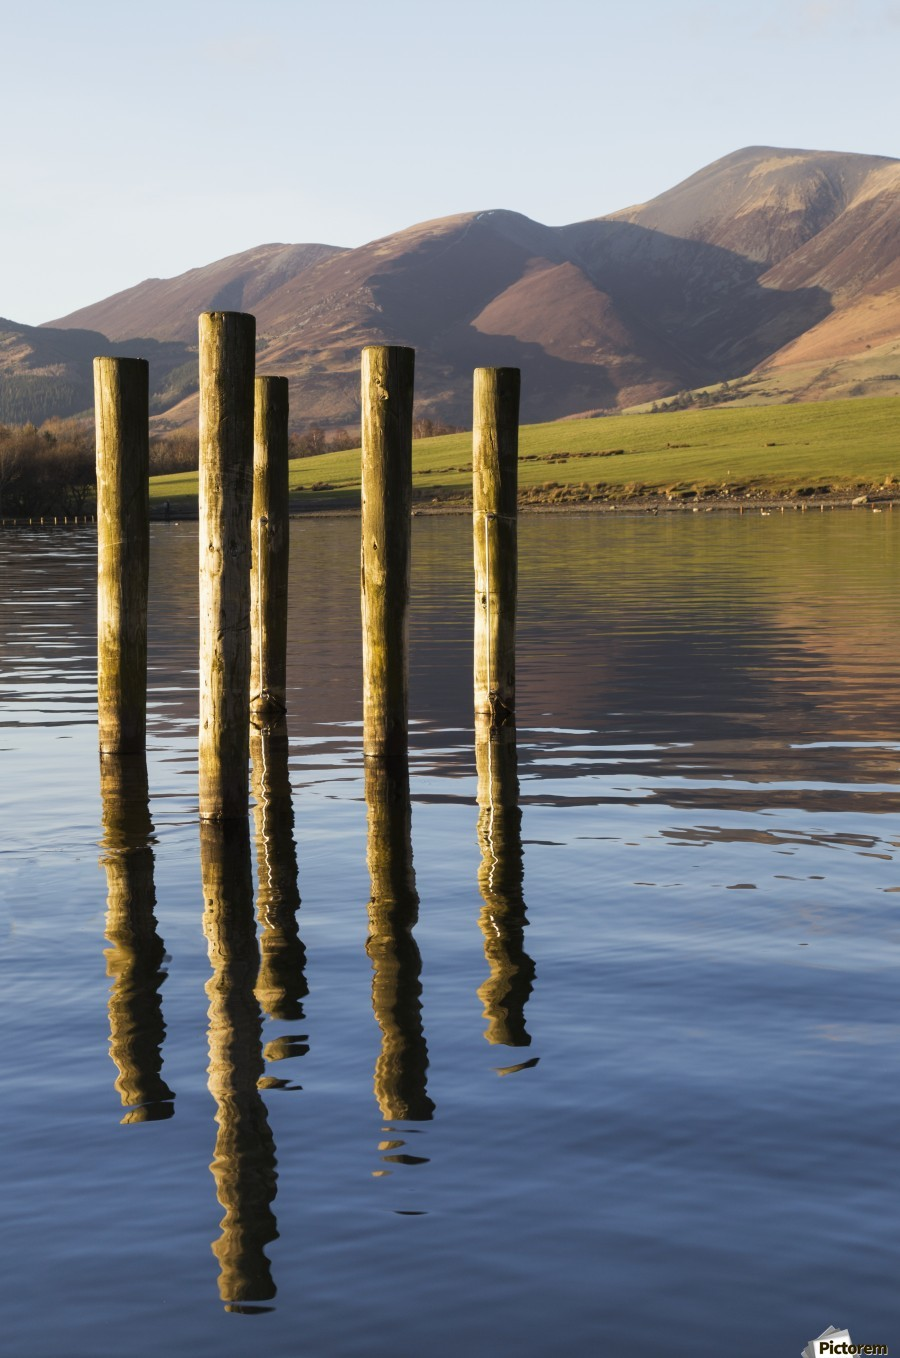 Wooden posts reflected in tranquil after with mountains the the background; Keswick, Cumbria, England  Print